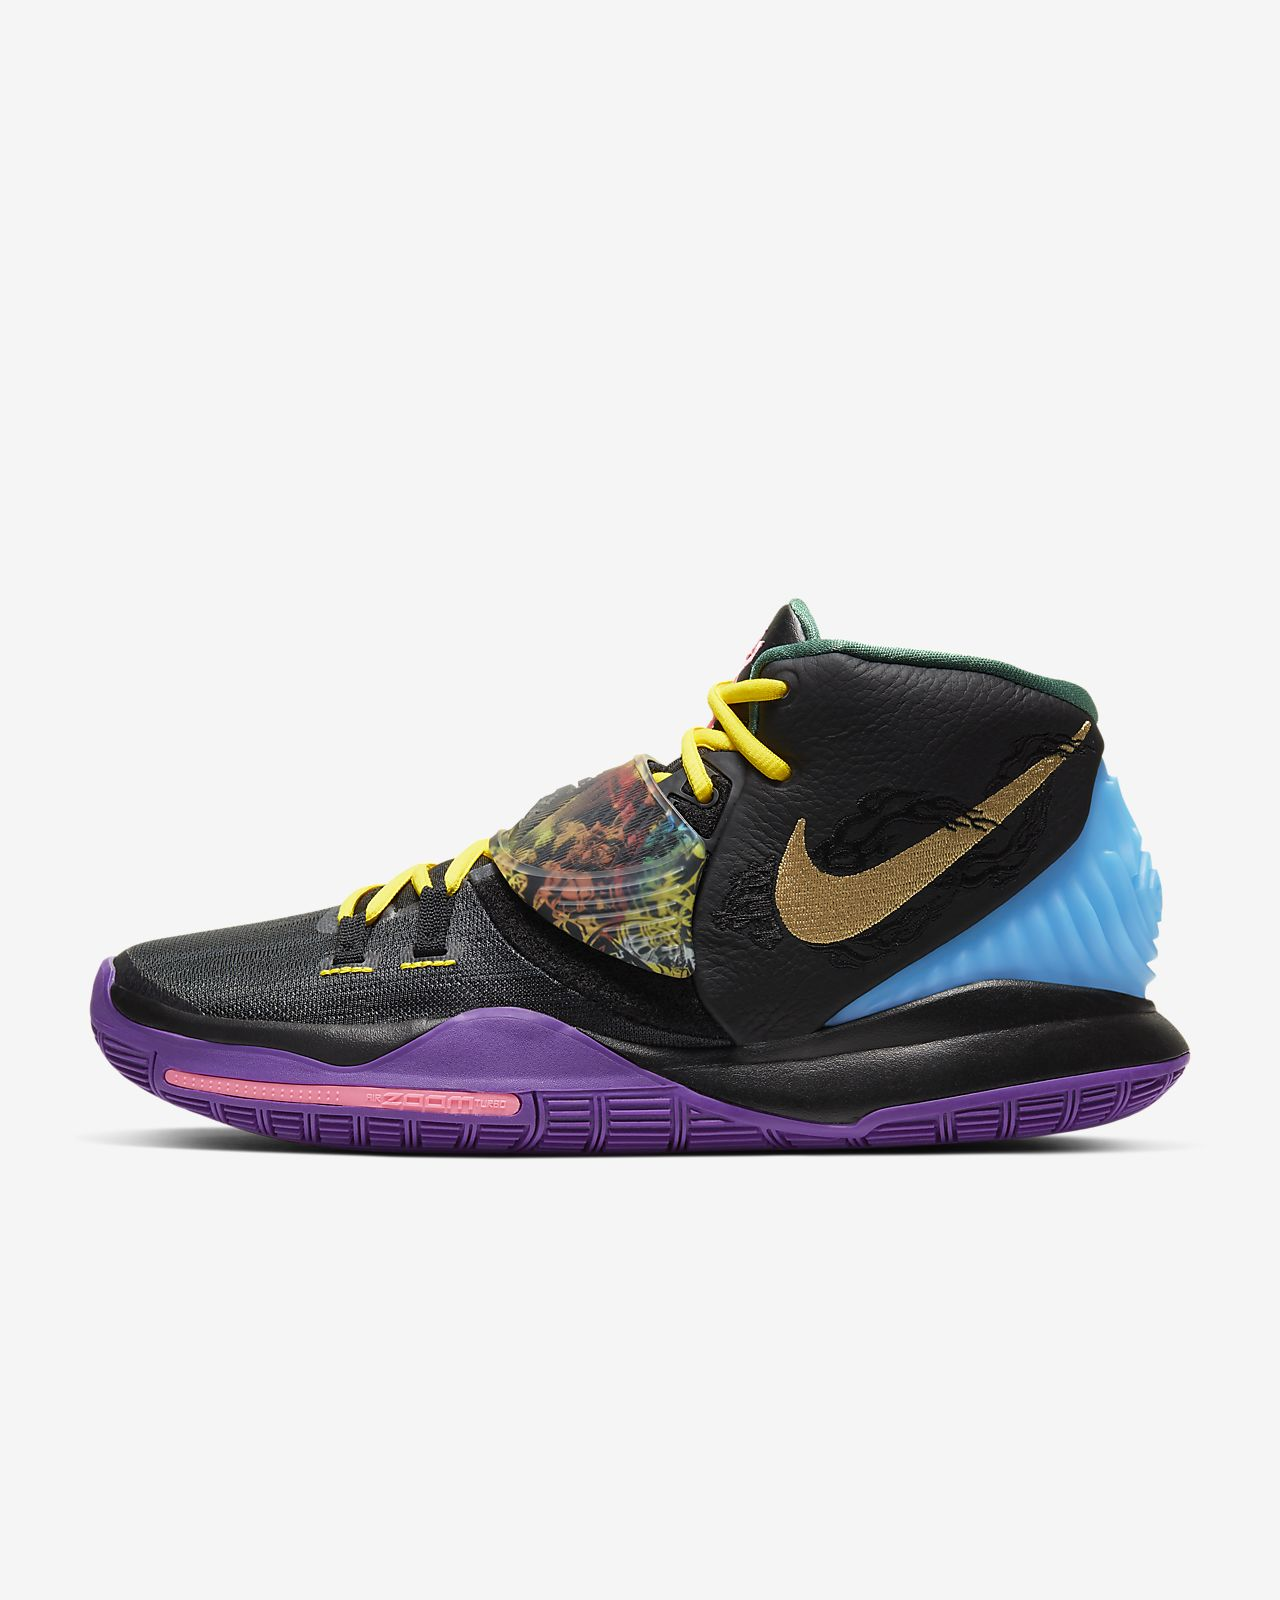 Nike Basketball | Waiting For Next Year